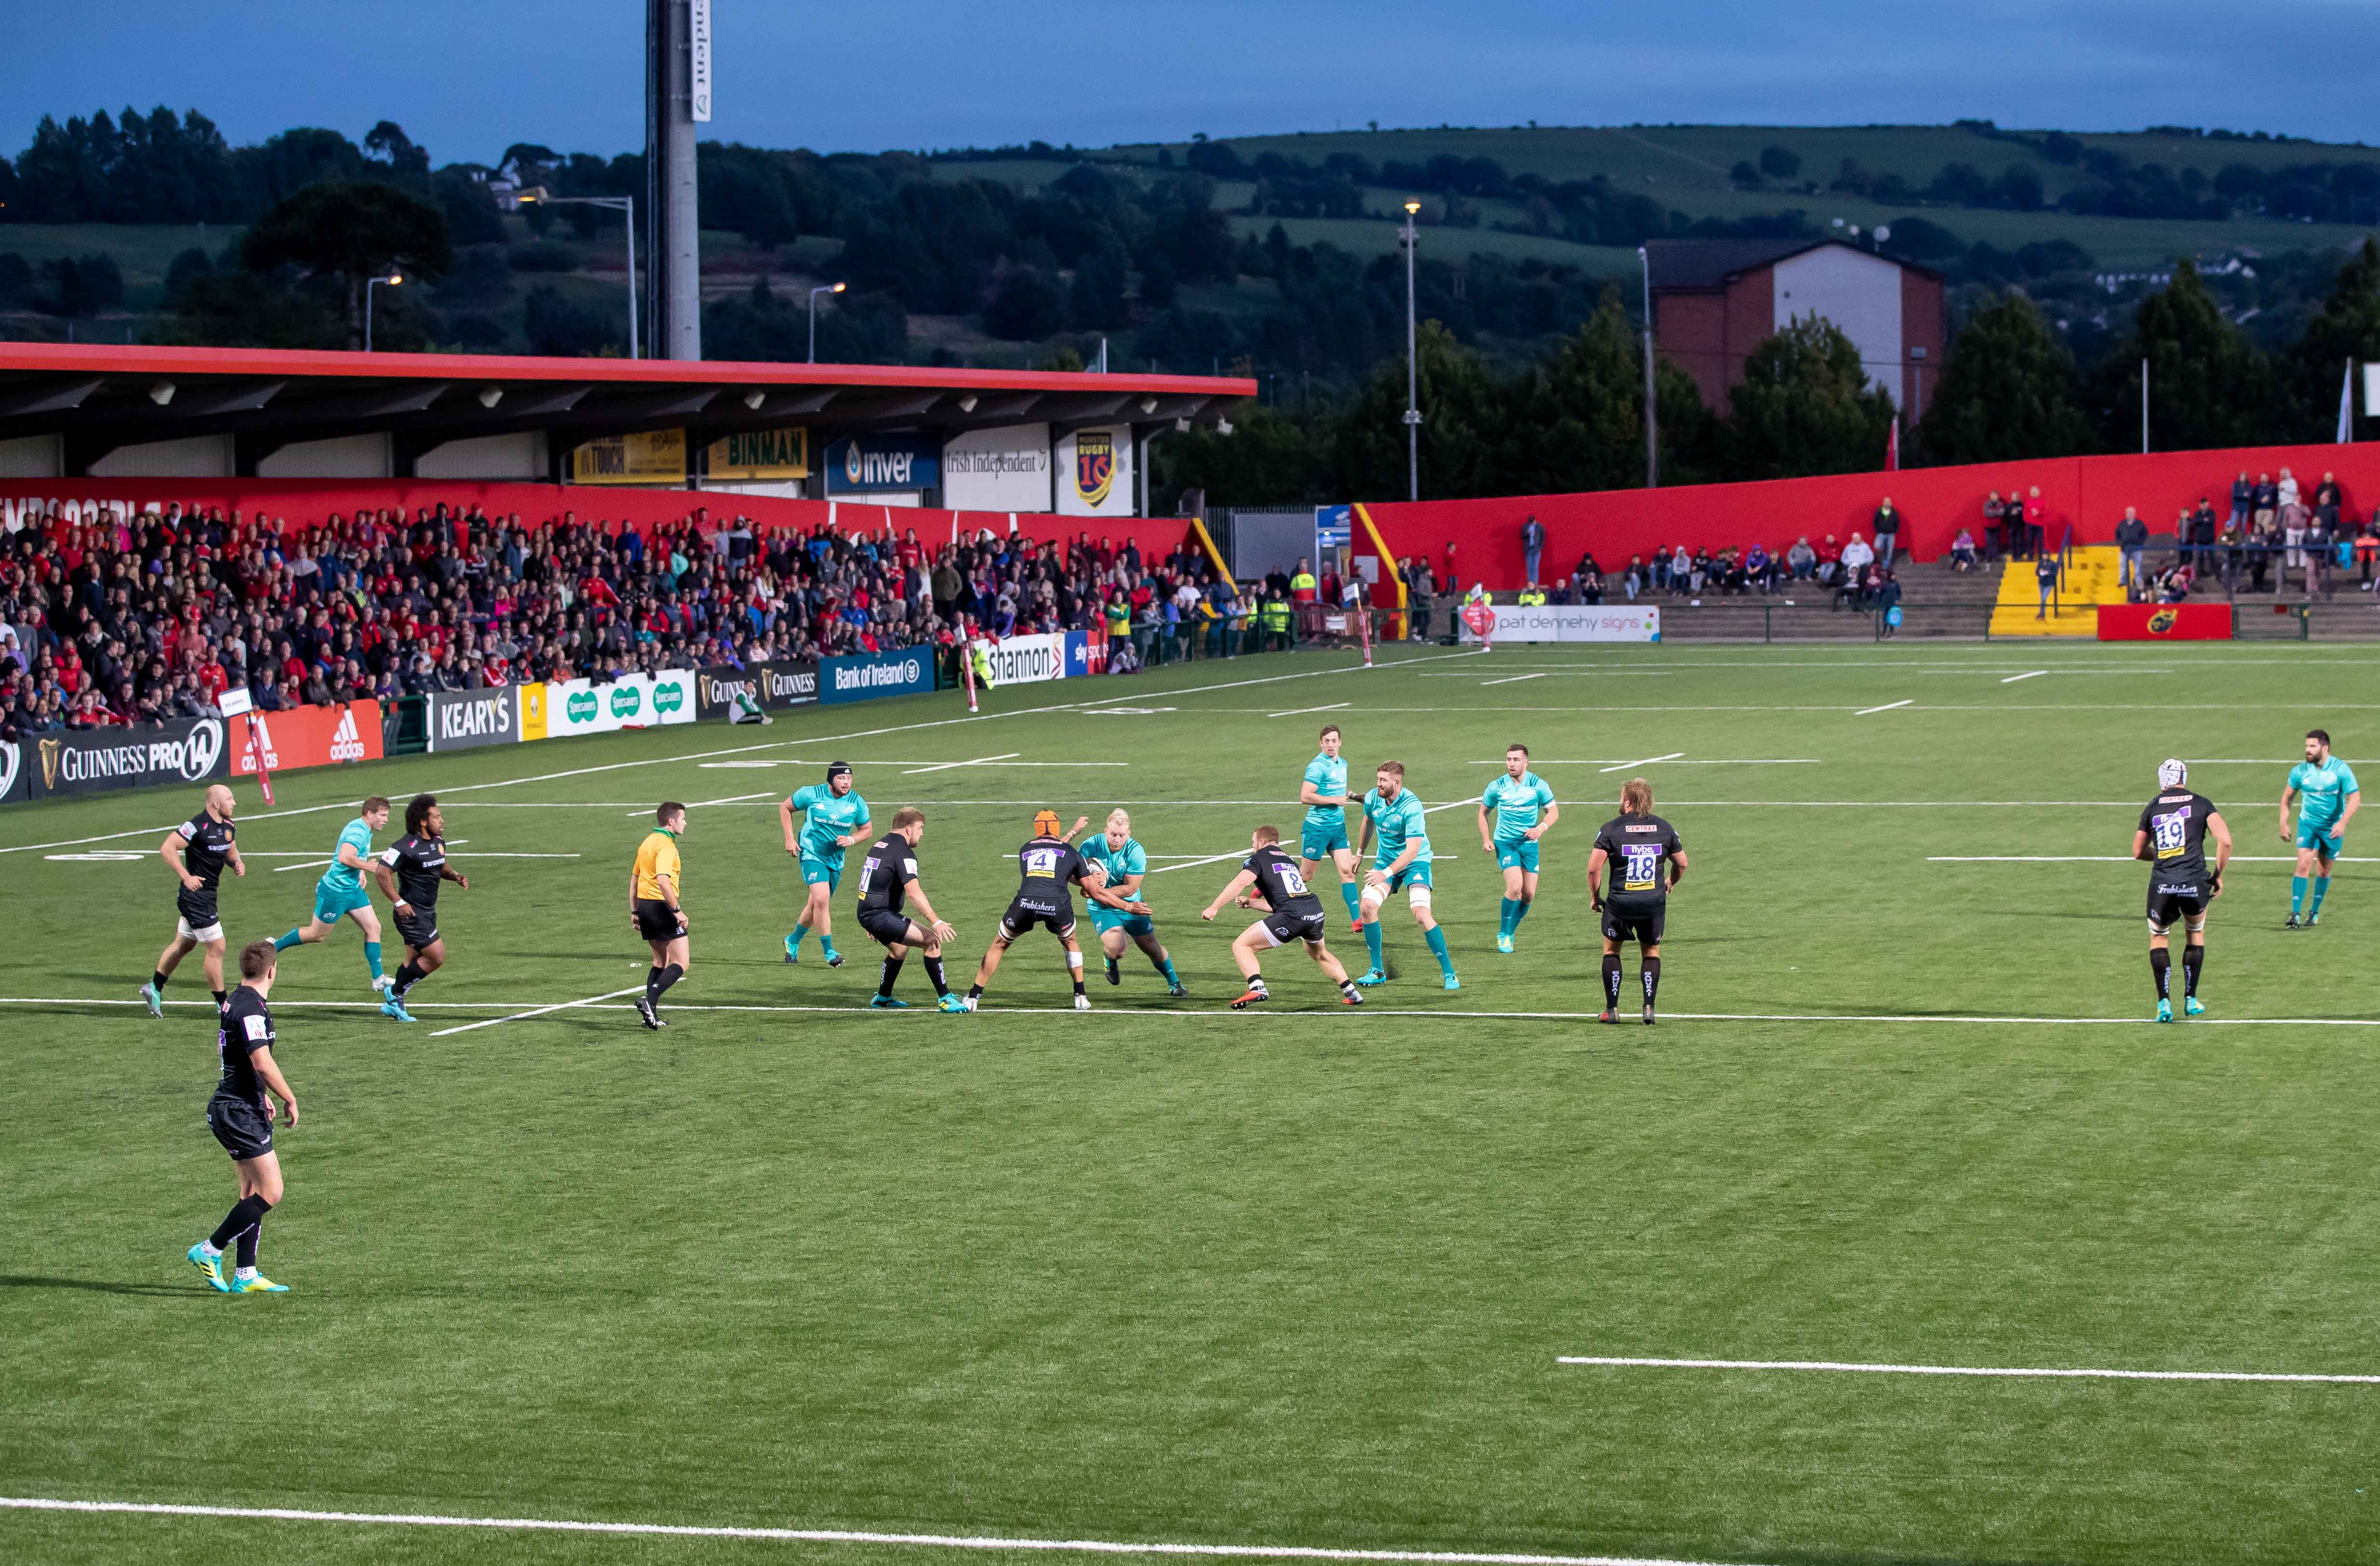 Keary's Renault Series, Irish Independent Park, Cork